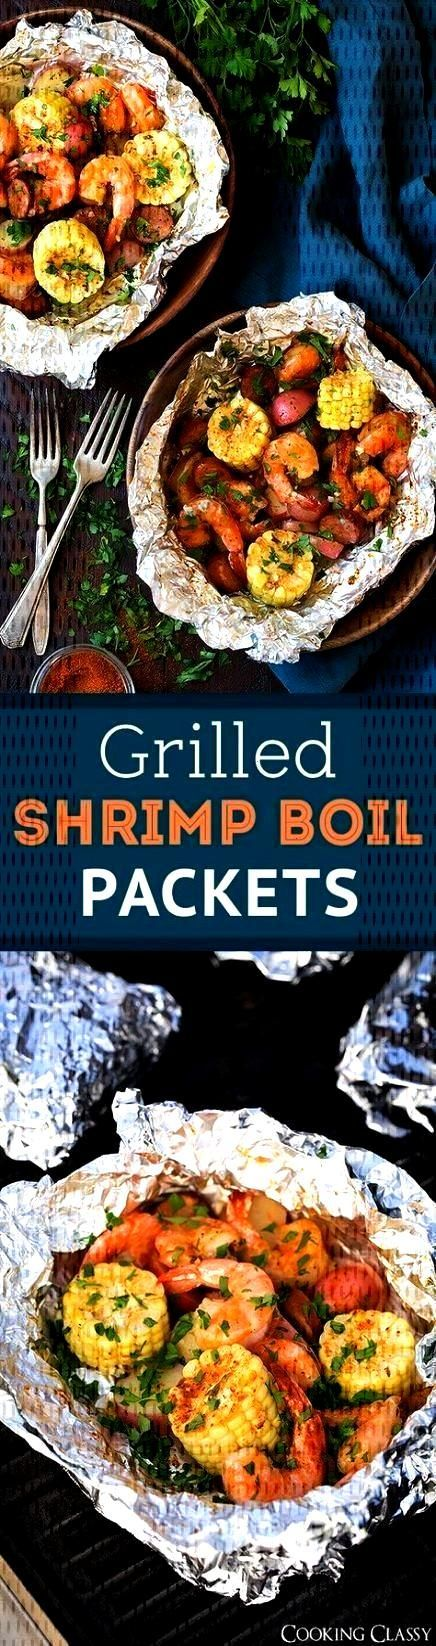 #seafoodboil #seafood #recipes #trendy #shrimp #recipe #boil #2020 #20 trendy seafood boil recipes shrimp 20 trendy seafood boil recipe...,  20 trendy seafood boil recipeYou can fi... #seafoodboil #seafoodboil #seafood #recipes #trendy #shrimp #recipe #boil #2020 #20 trendy seafood boil recipes shrimp 20 trendy seafood boil recipe...,  20 trendy seafood boil recipeYou can fi... #seafoodboil